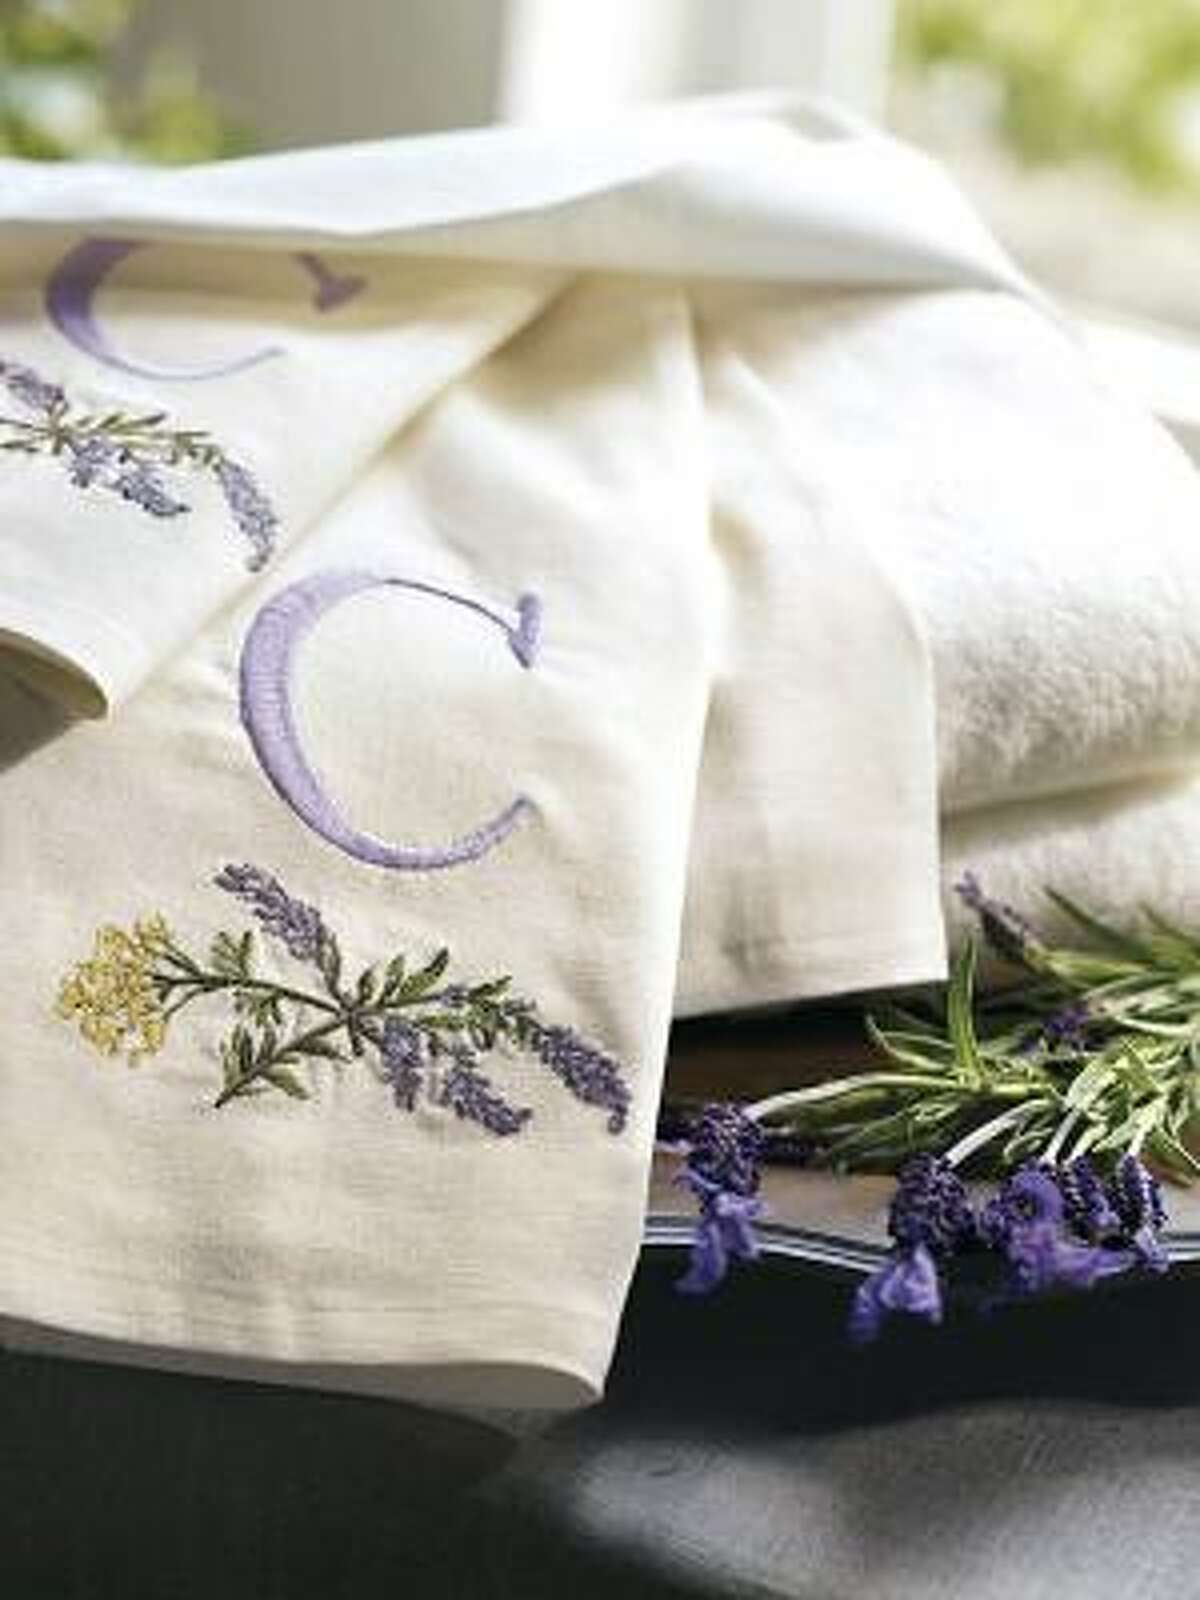 Pottery Barn's lavender embroidered towels have a homey ambience.